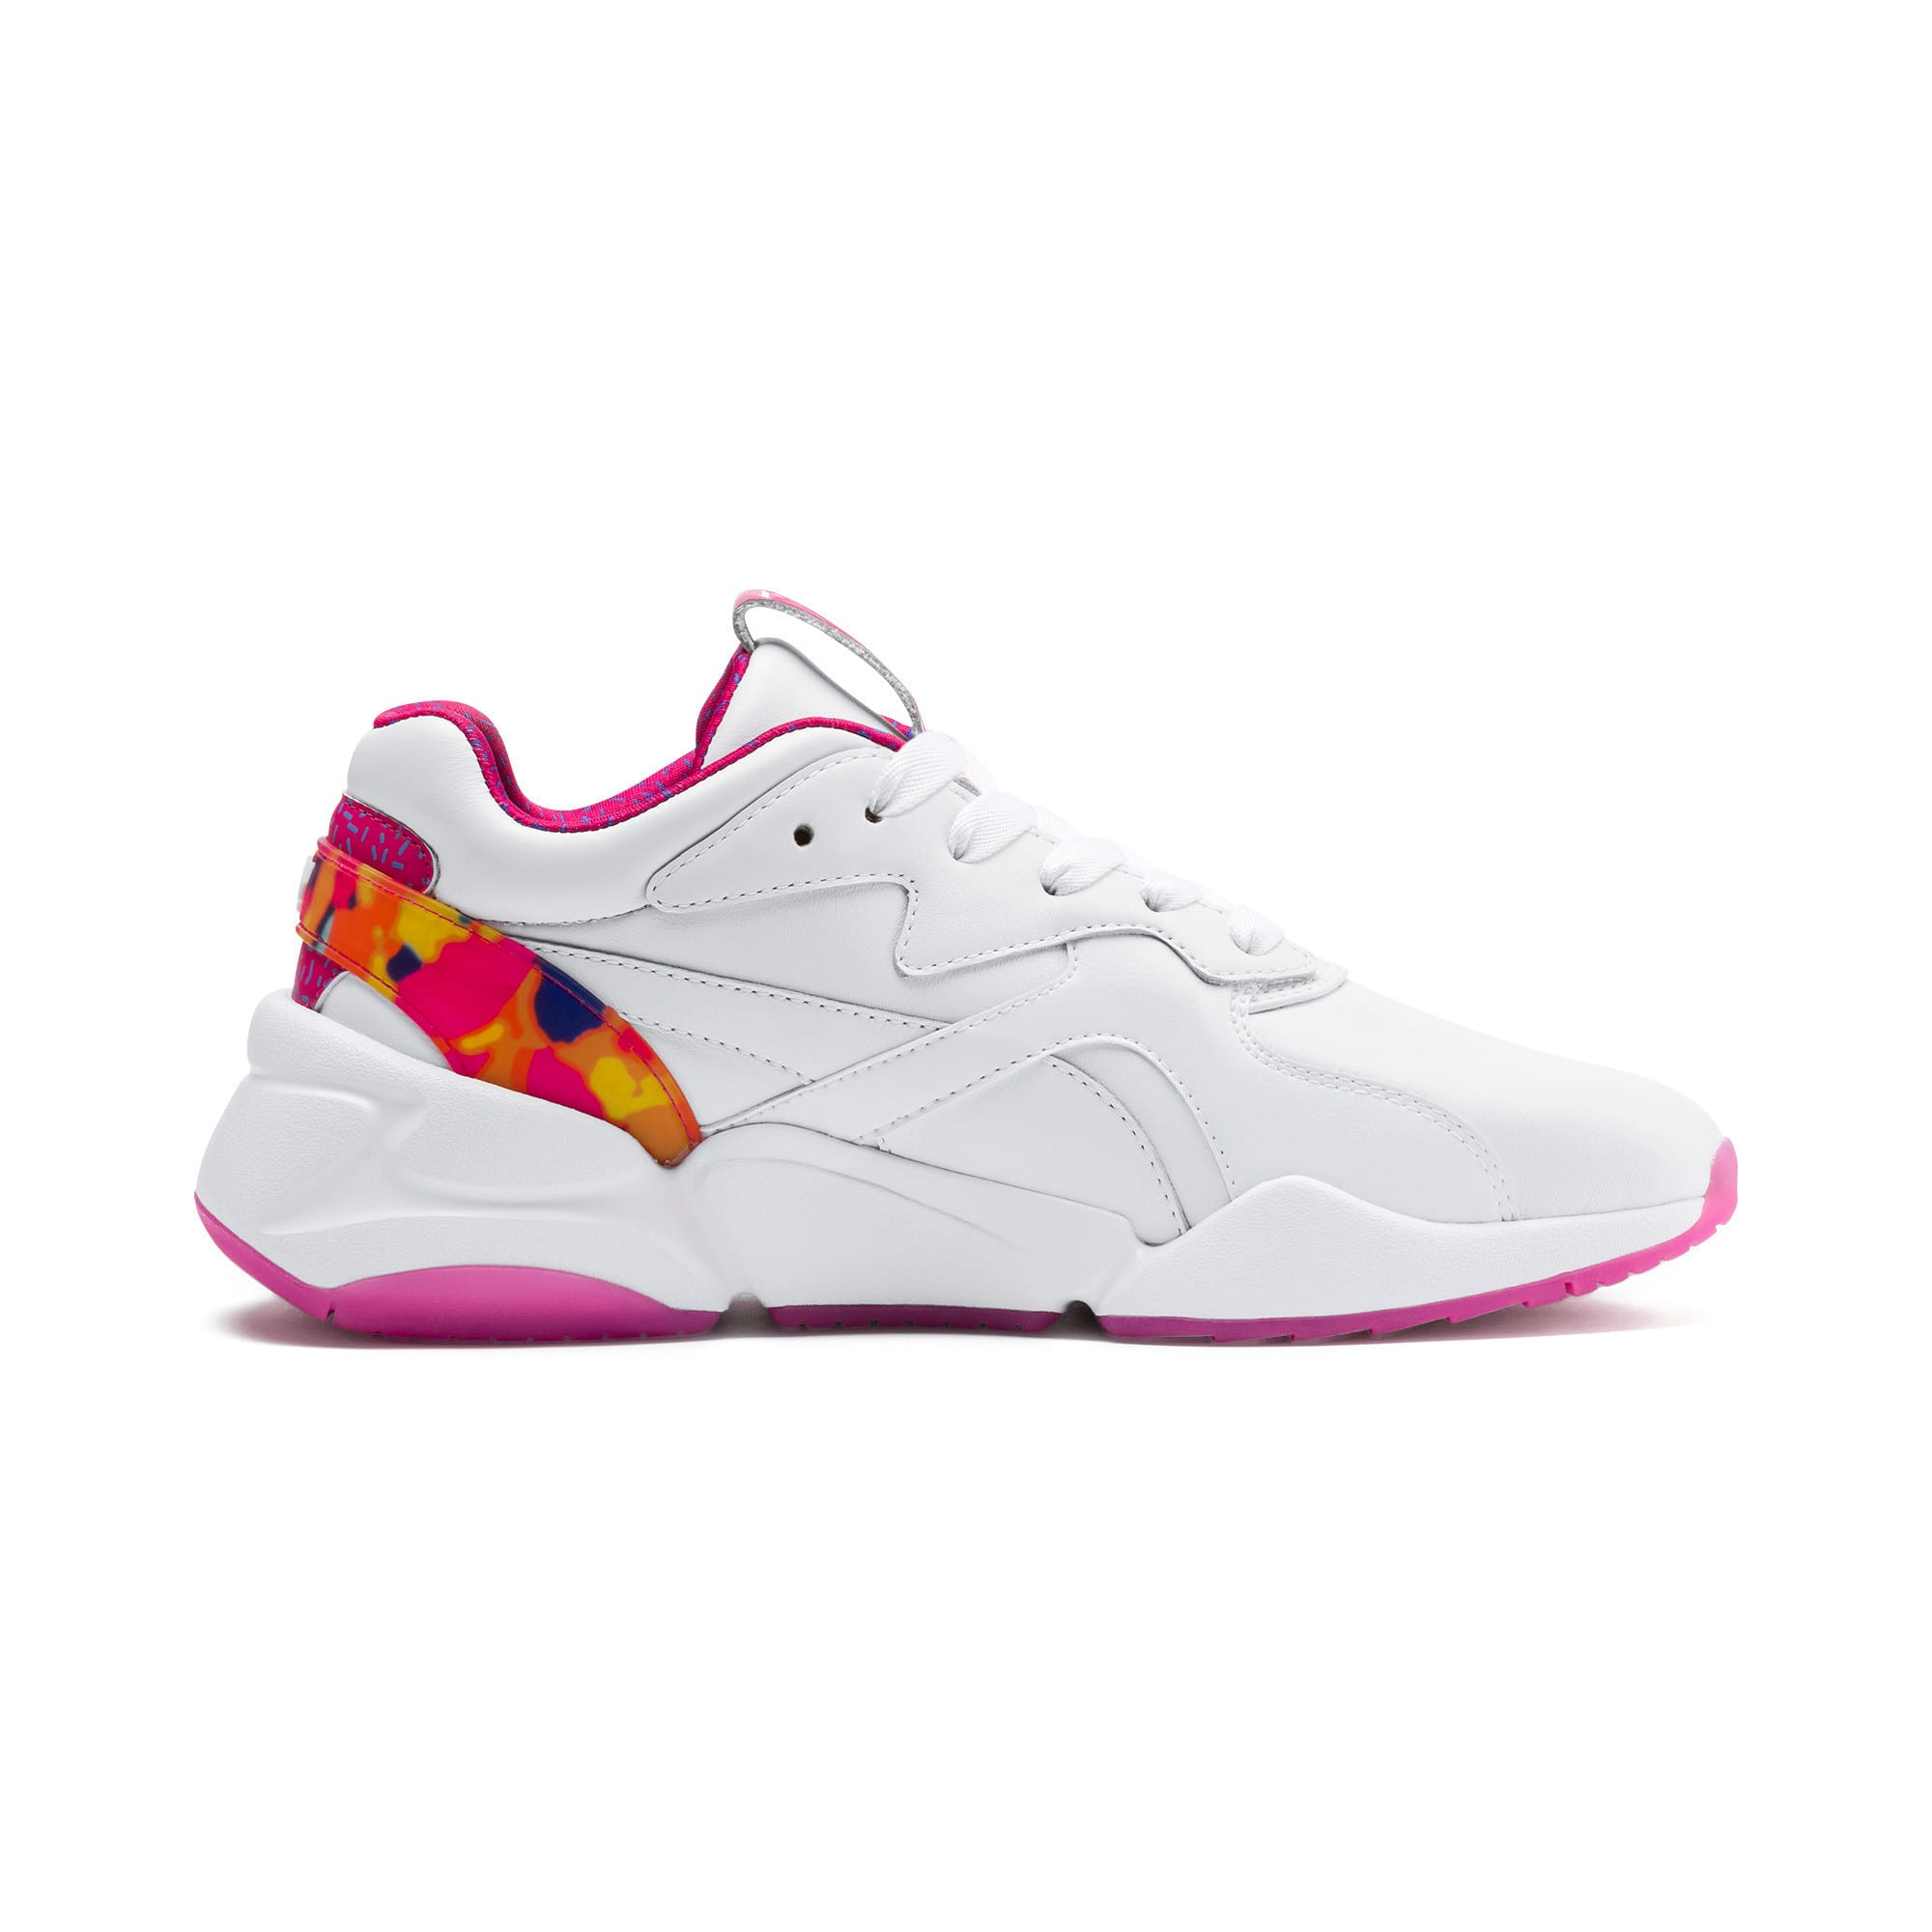 Thumbnail 5 of Nova x Barbie Flash Women's Sneakers, Puma White-CABARET, medium